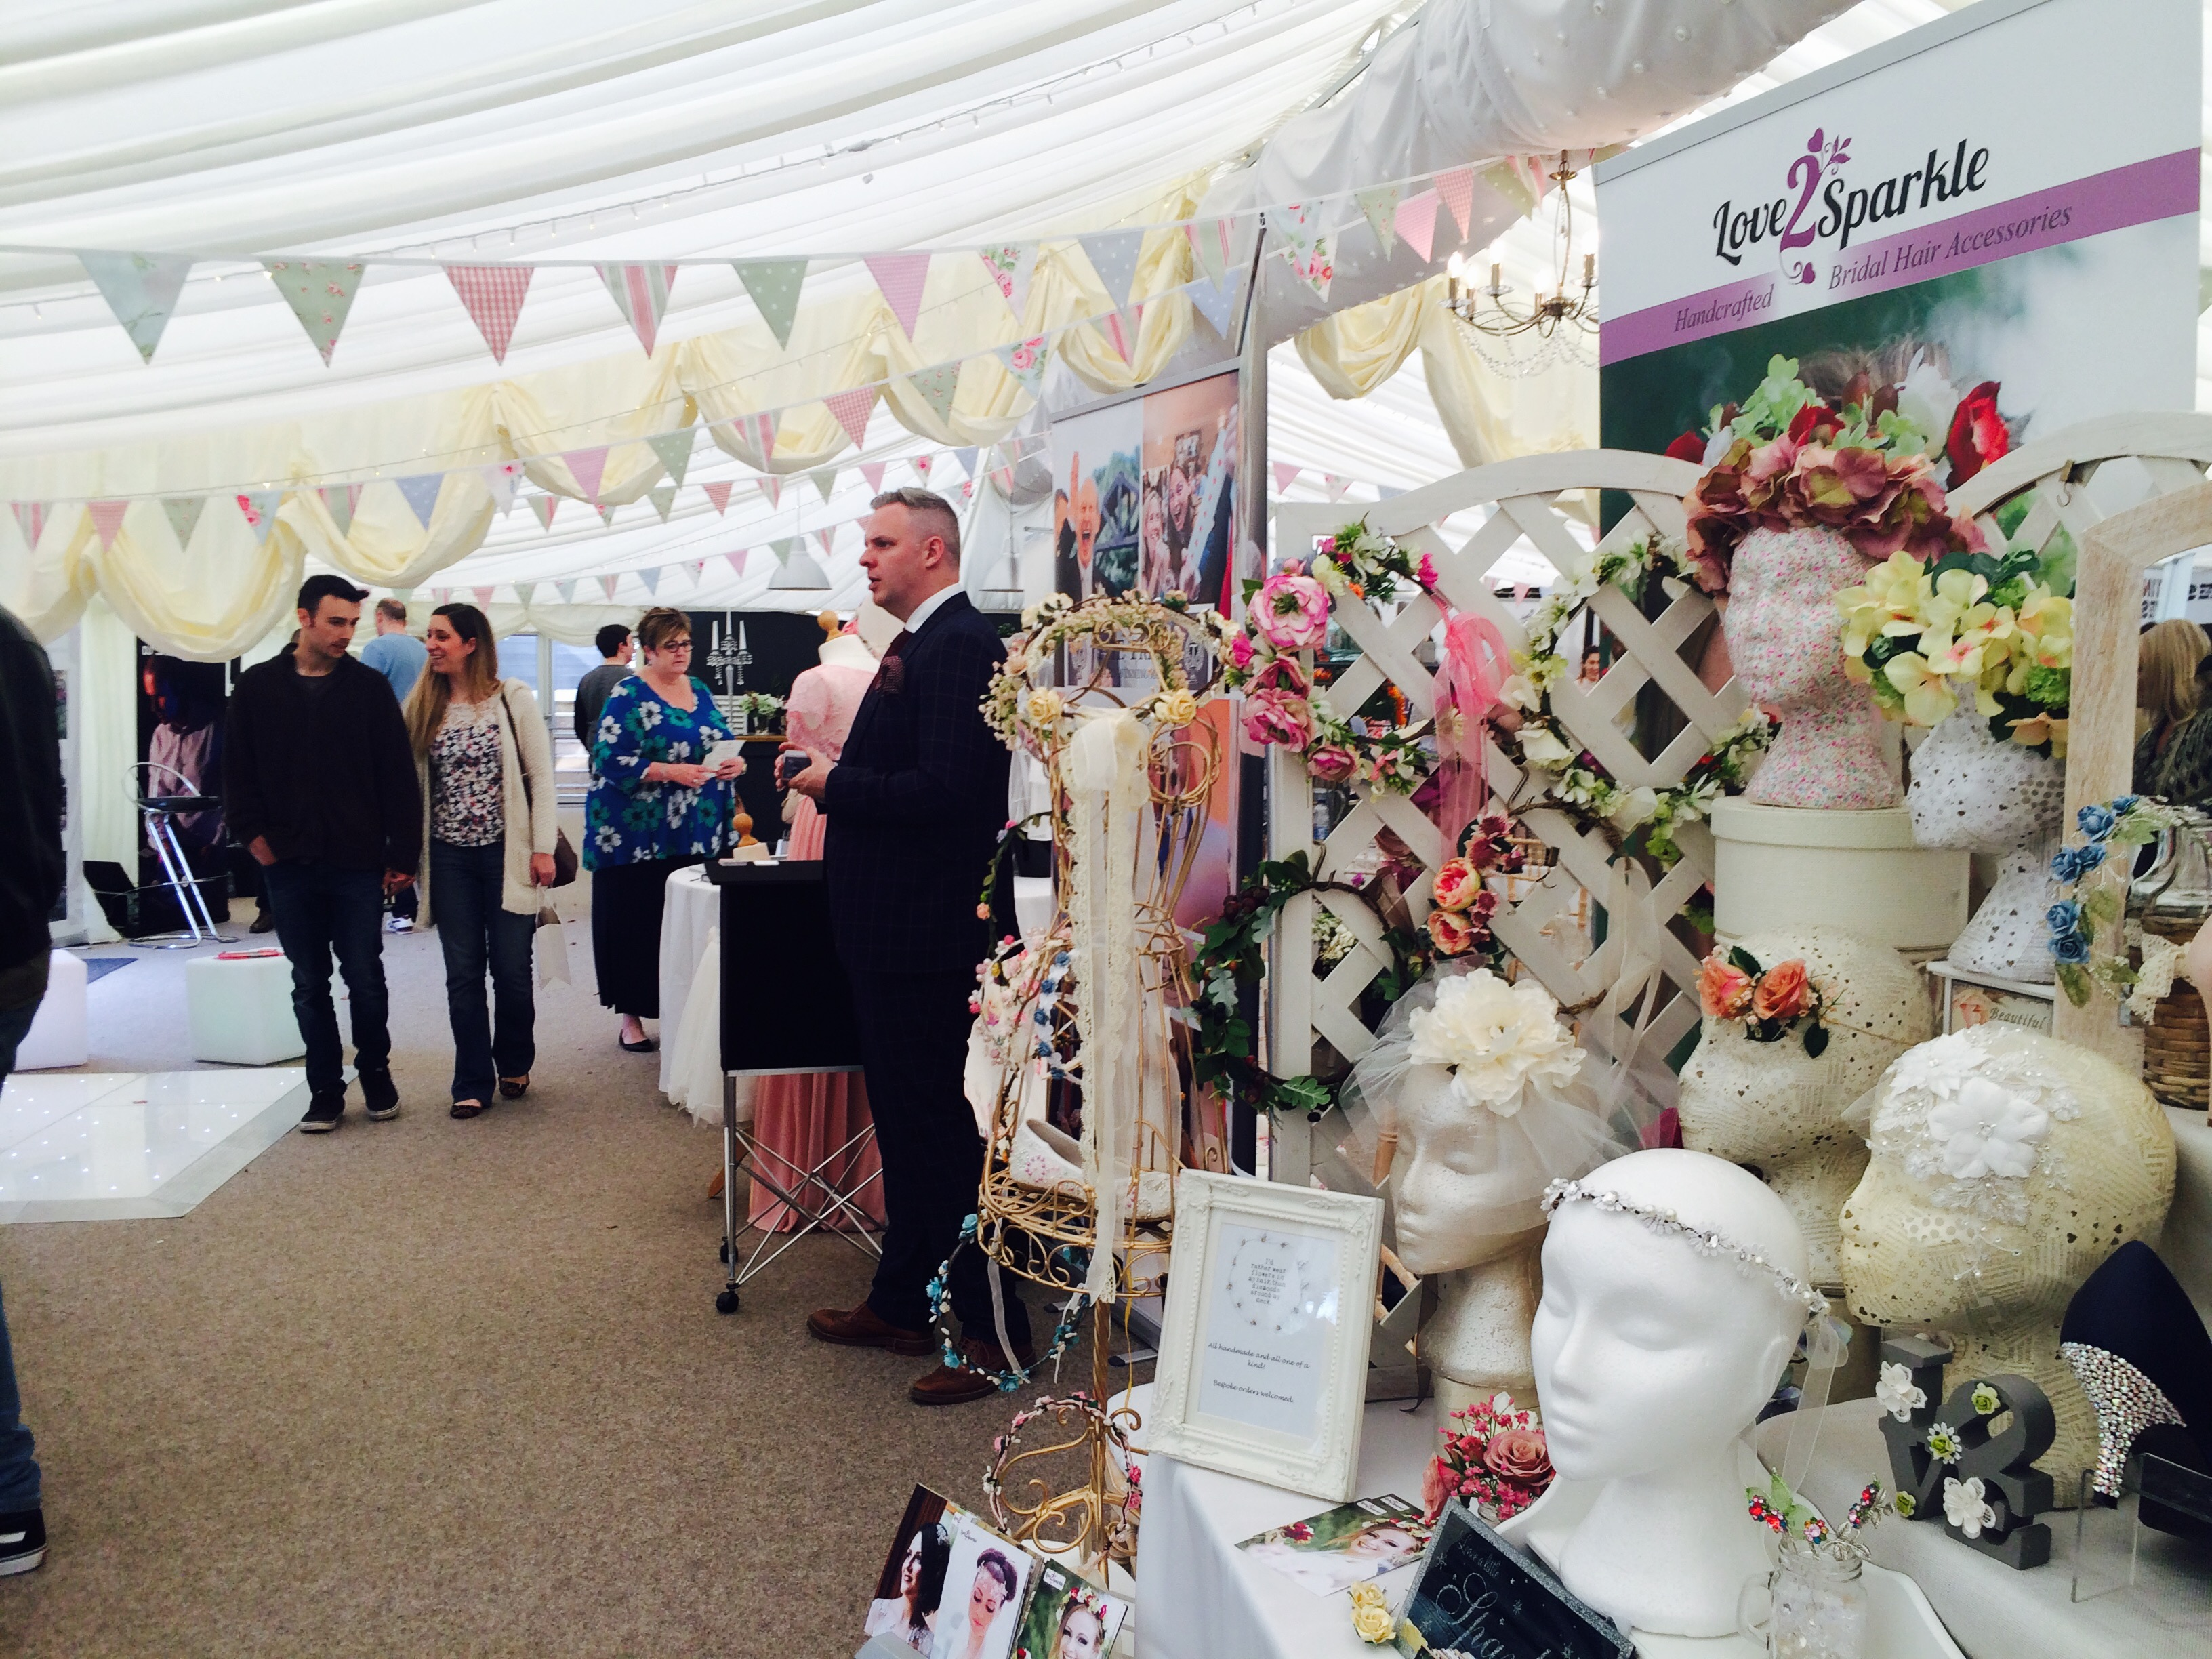 The Walled Garden At Beeston Fields Wedding Fair